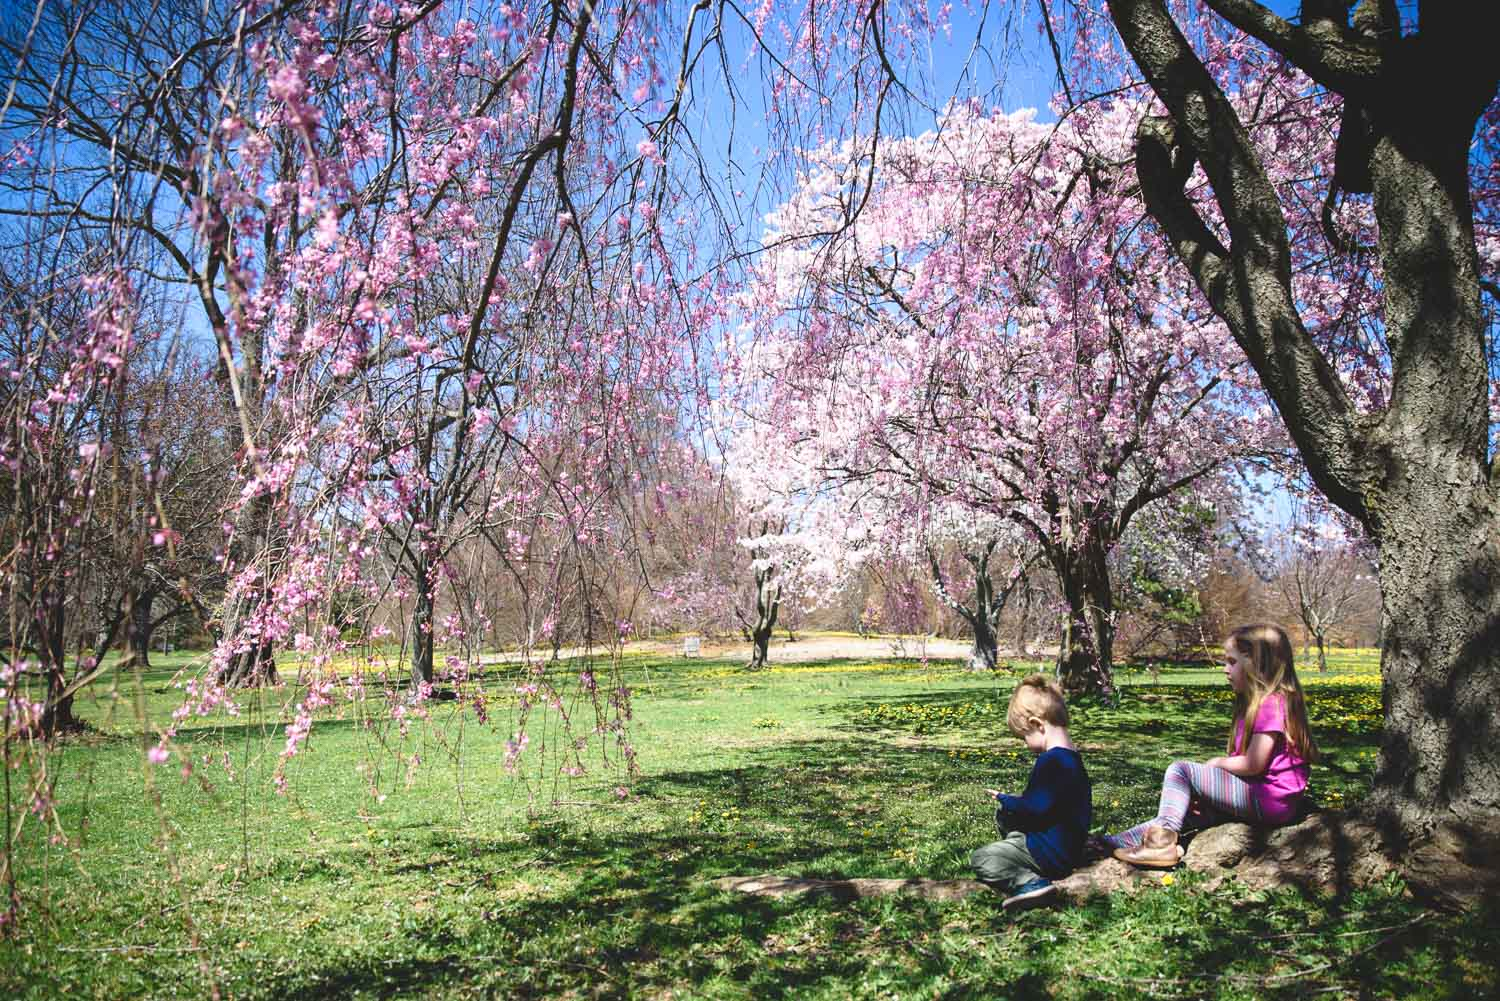 Kids sitting under cherry blossoms in Planting Fields.